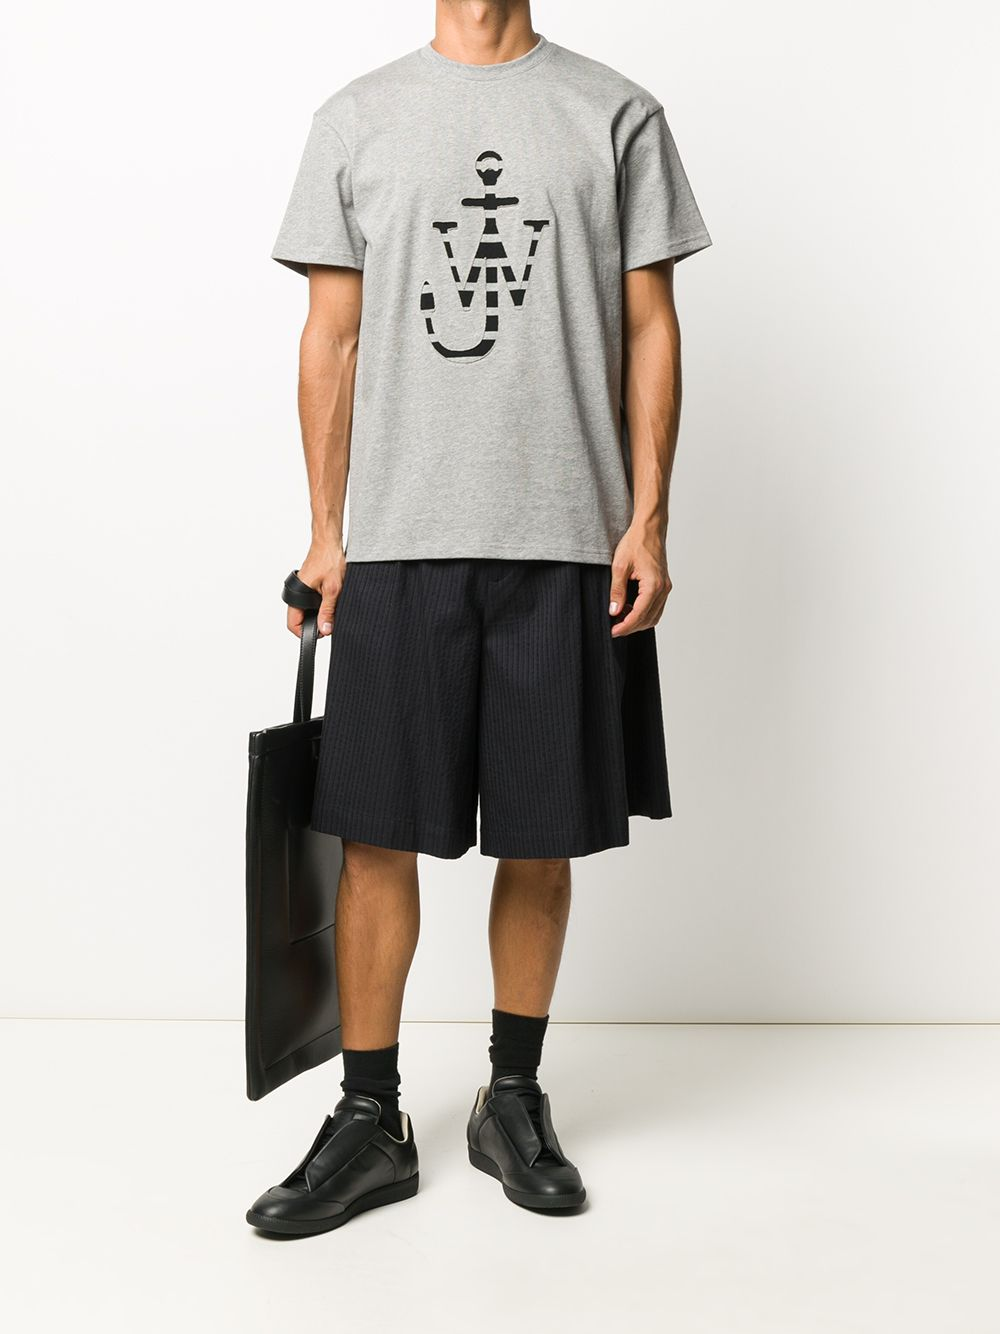 JW ANDERSON JW ANDERSON | T-shirt | JE0089PG0079907